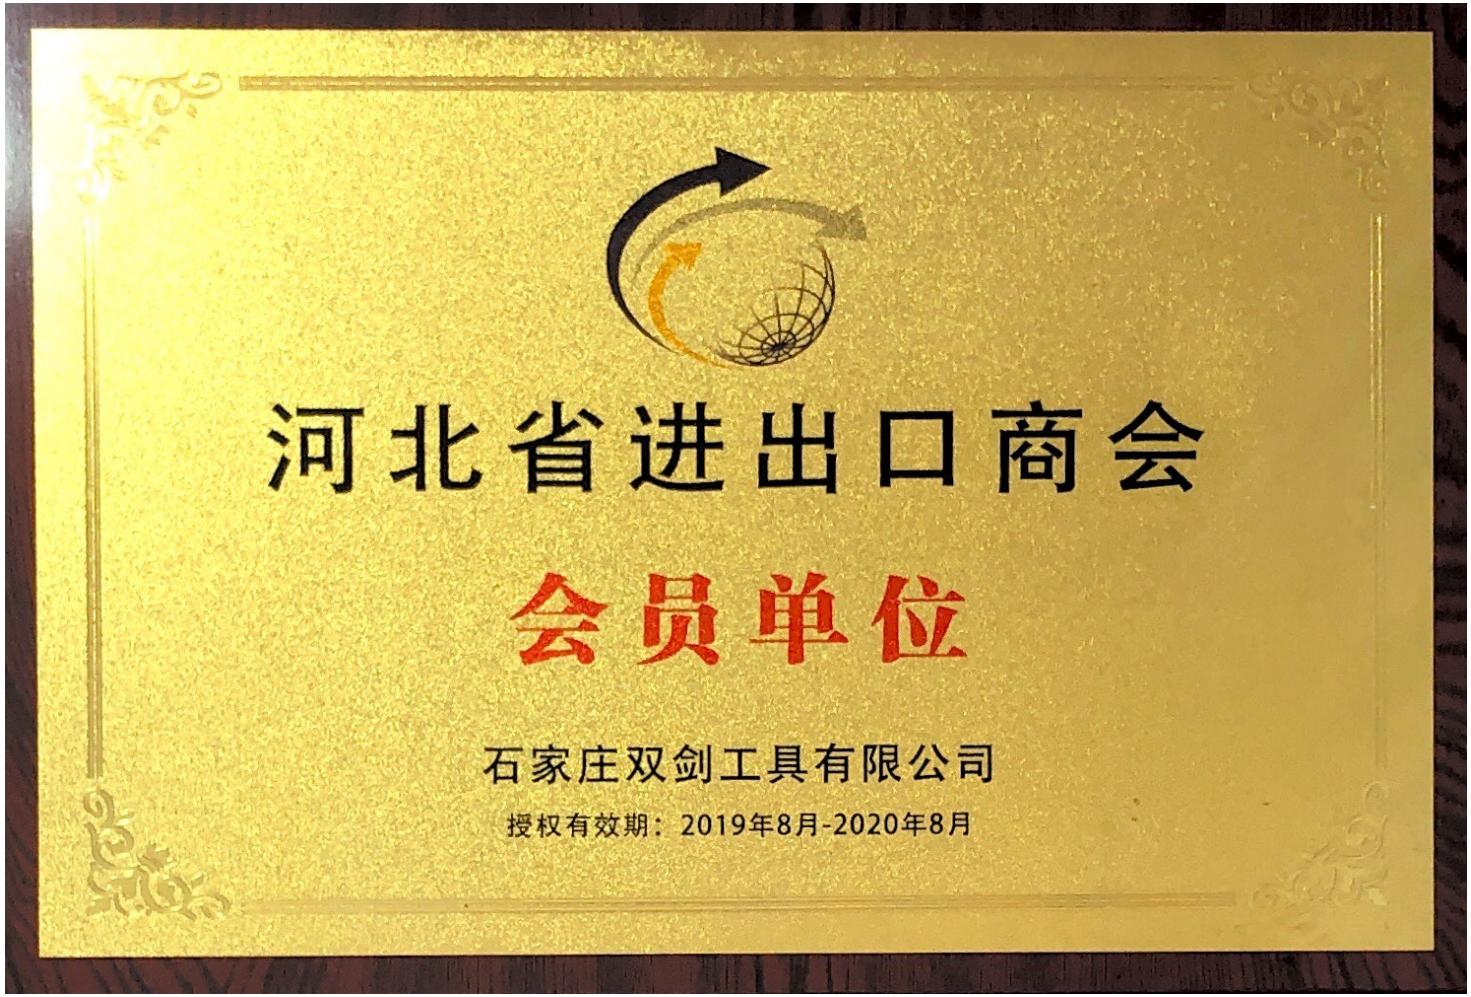 Member of Import and Export Chamber of Commerce Certificate